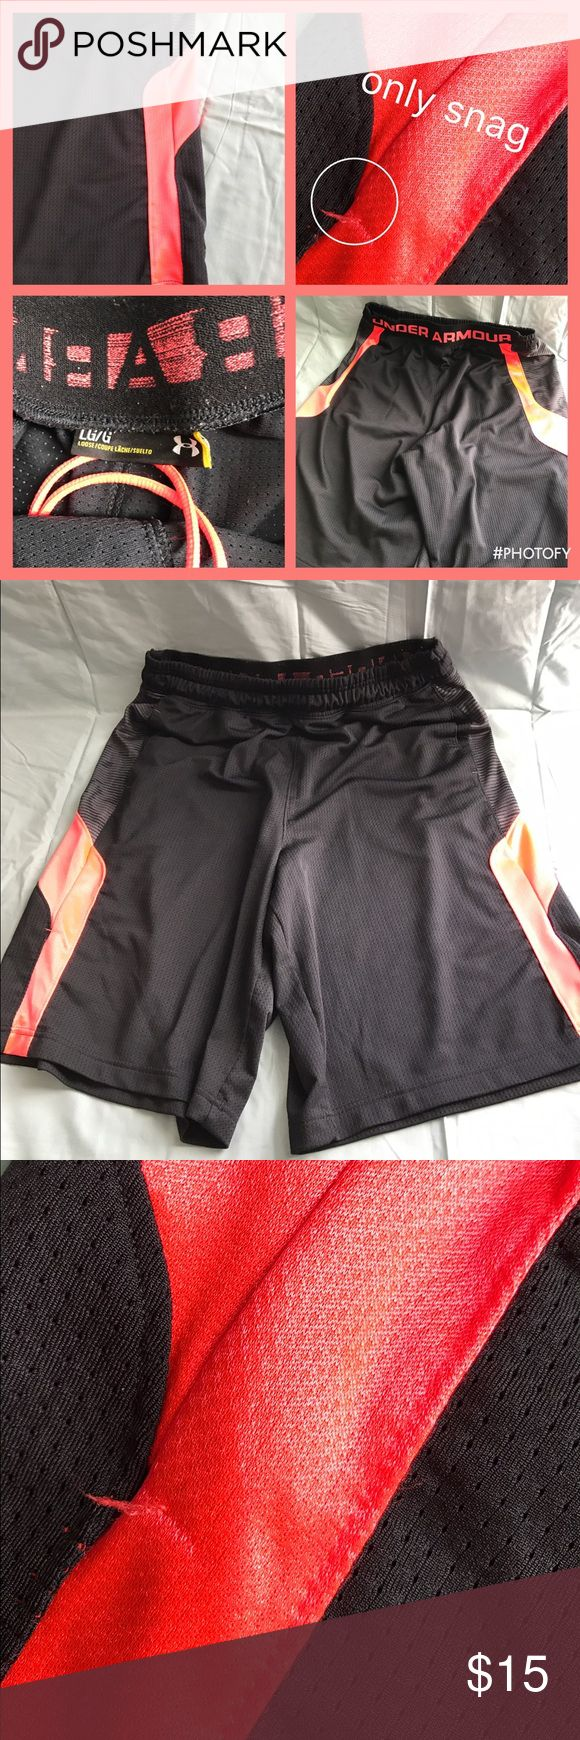 🔴Under Armour basketball Shorts Black/Red🔴 🔴Under Armour Shorts Black/Red🔴  🔴Size L🔴 🔴Fabric: 100% Polyester🔴 🔴The shorts have been worn before🔴 🚨They have a snag on them (included in picture) no other problems such as tears or rips or dirty🚨 🔴Do have pockets🔴 🚨SOLD AS IS🚨 Under Armour Shorts Athletic